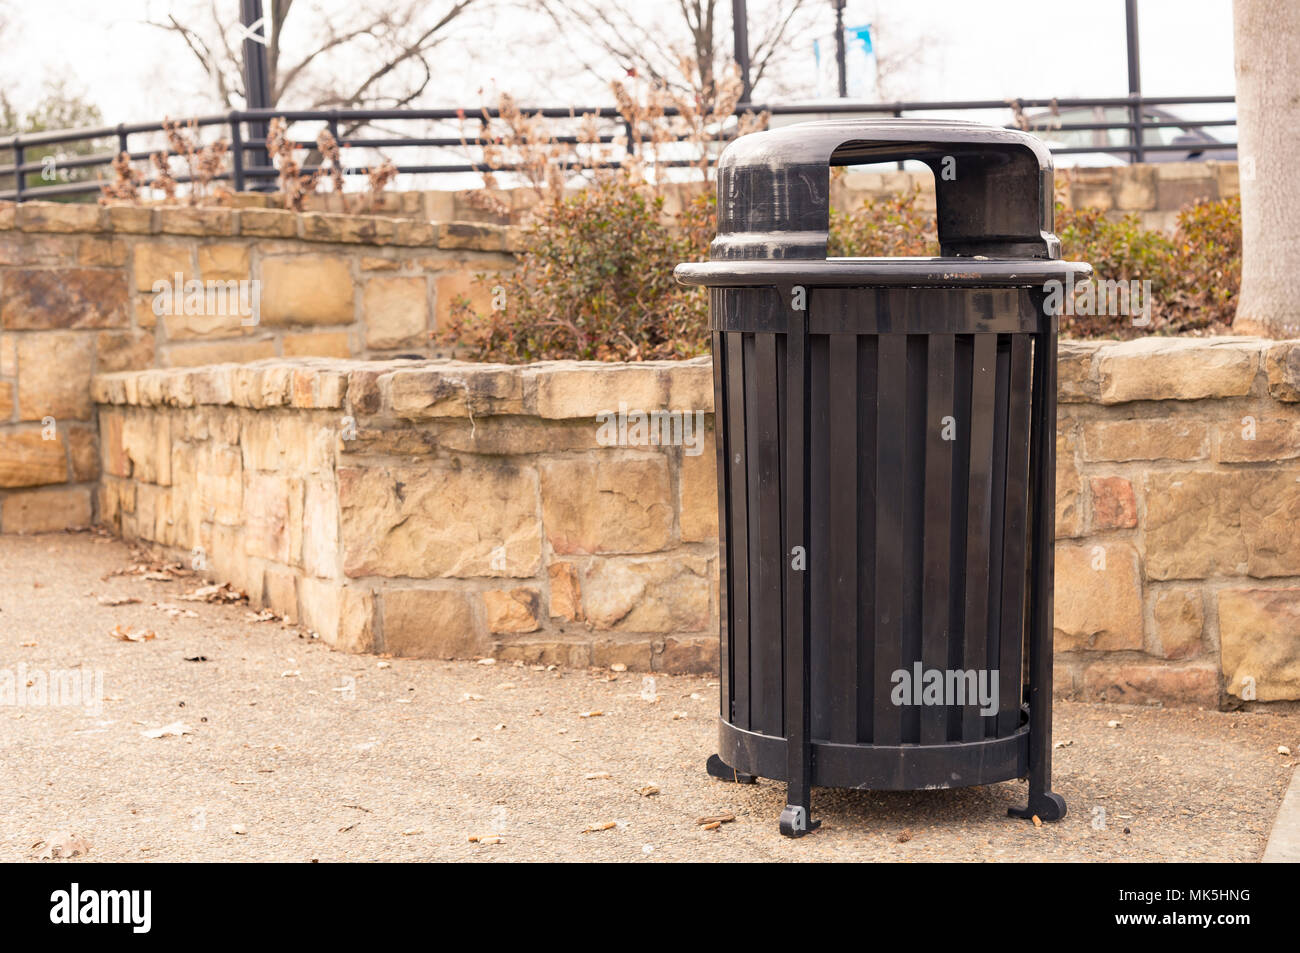 trash can in park alongside stone brick wall on gravel walkway - Stock Image